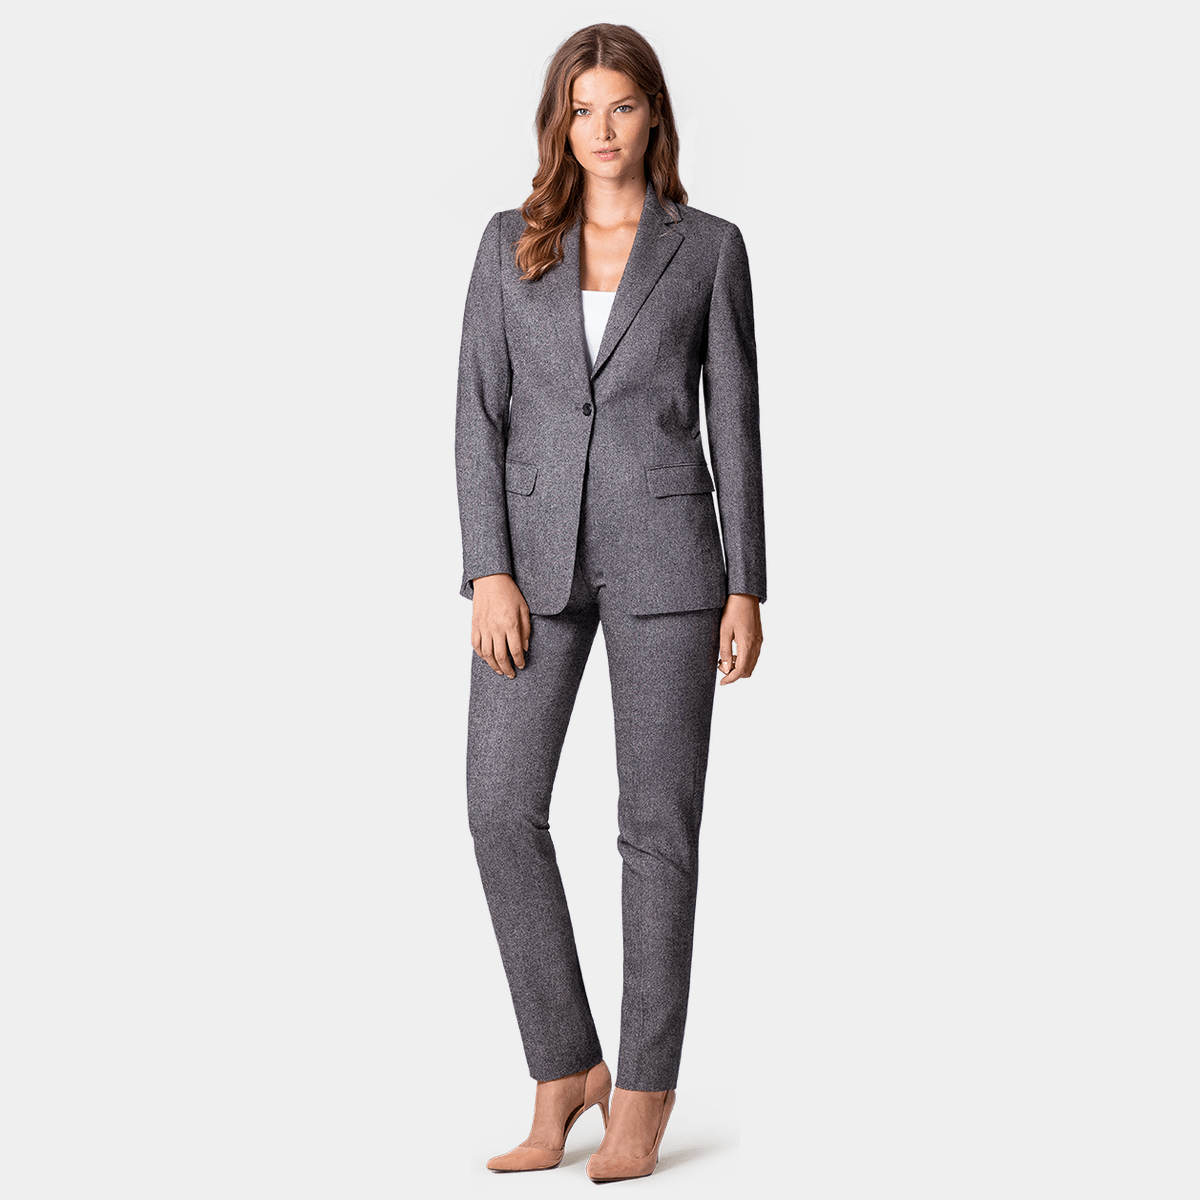 23c447a66ed6 Women's Tweed Suits | Made to Measure - Sumissura